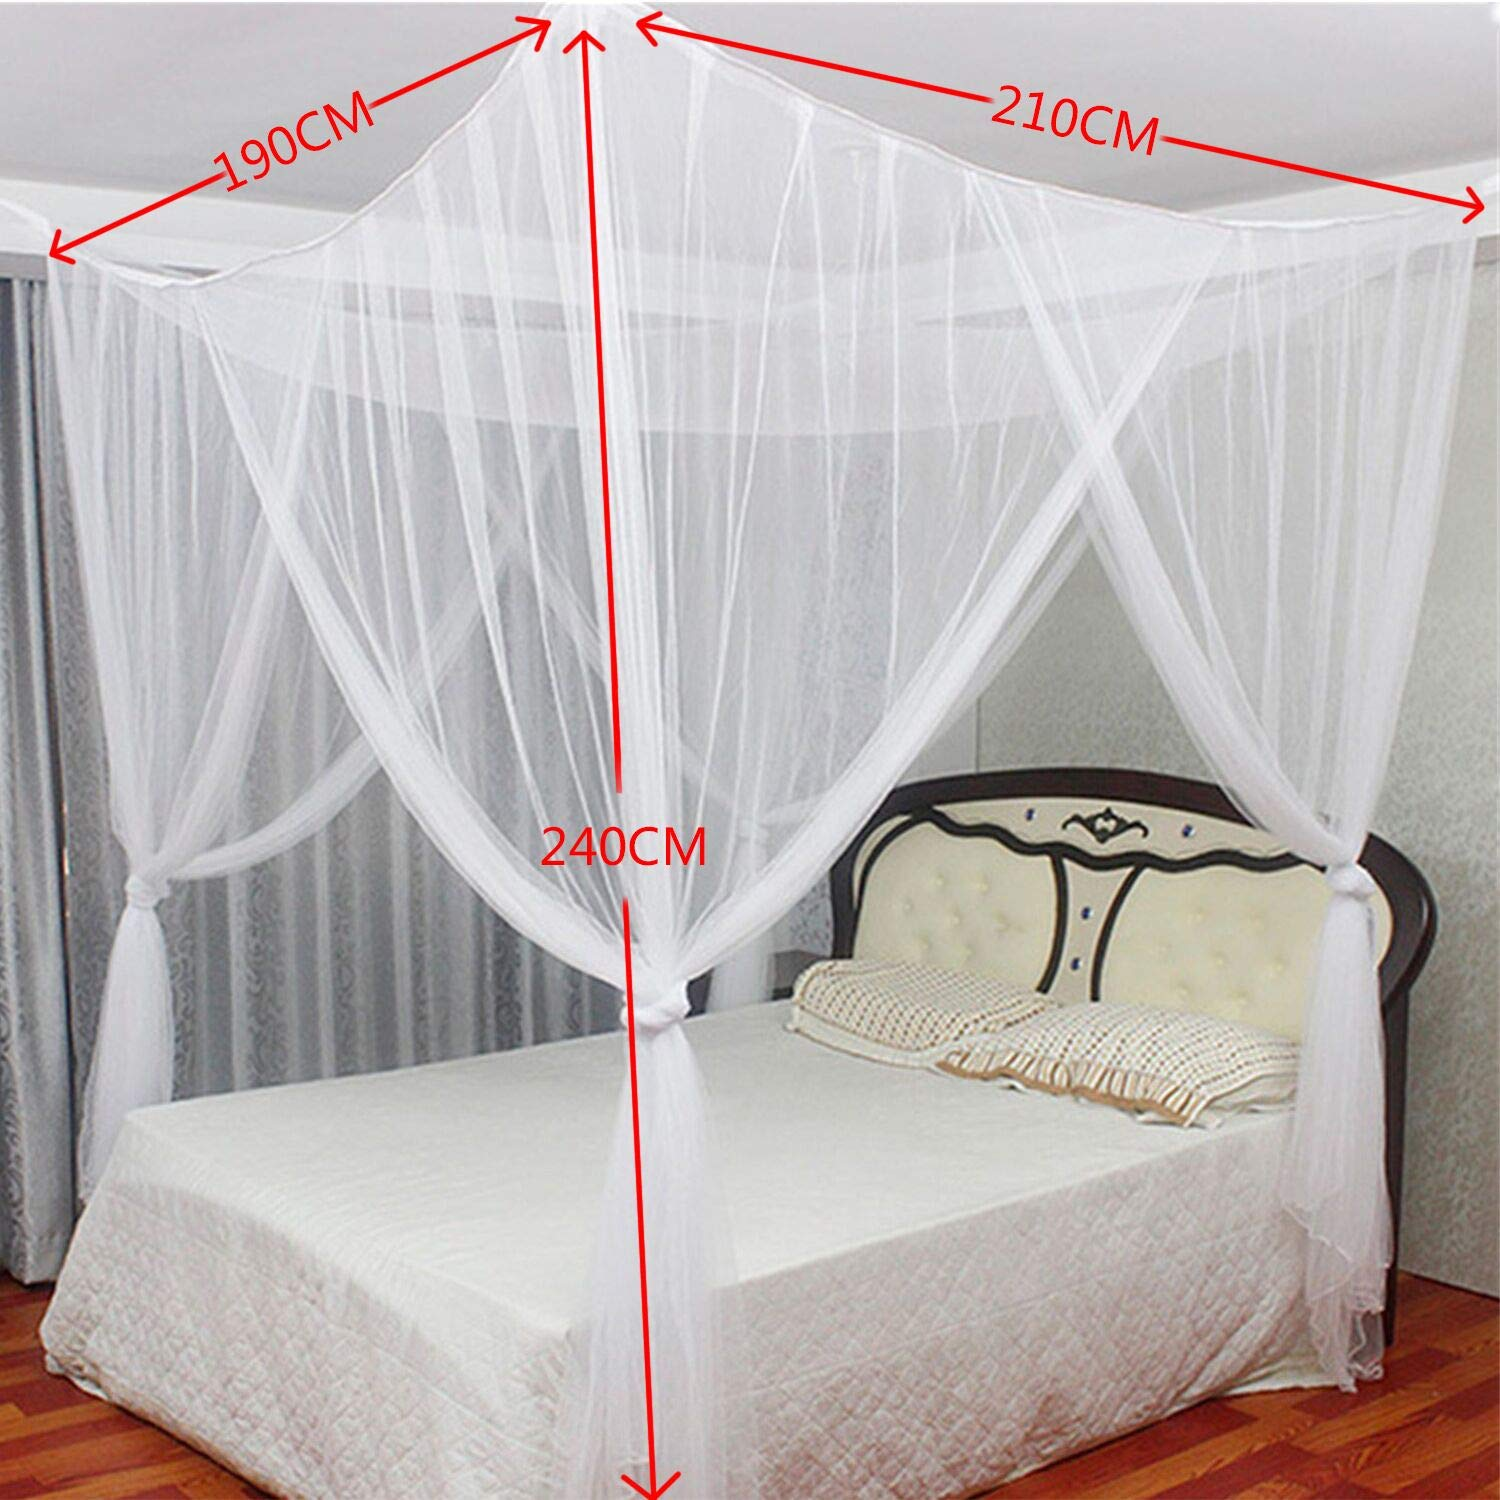 White Universal Square Mosquito Net for All Size Bed Digead Bed Canopy Hanging Bed Canopy Netting Four-Door Mosquito Net//Bed Canopy